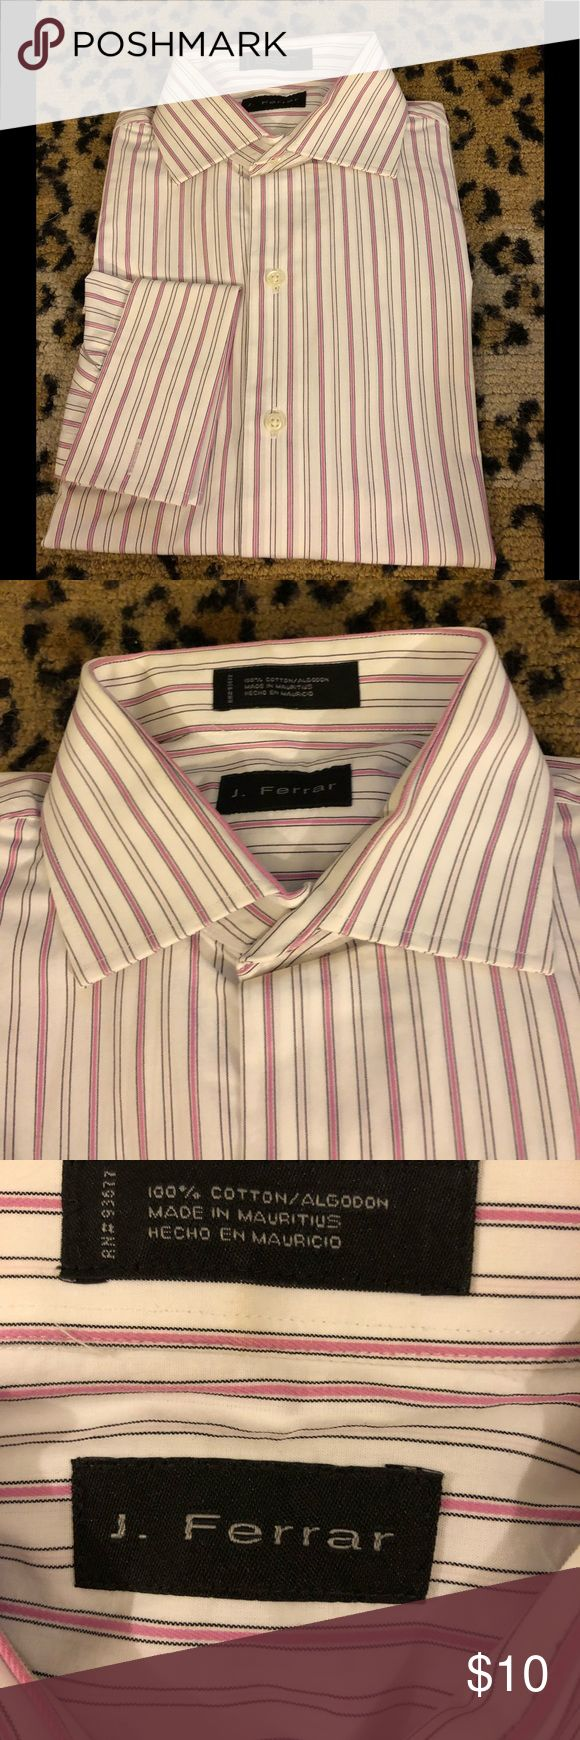 J. Ferrar White w/ Pink Stripe French Cuff Shirt J. Ferrar White with Pink and Black Stripe French Cuff Dress Shirt size 16.5 34/35! Great condition!  Please make reasonable offers and bundle! Ask questions :) J. Ferrar Shirts Dress Shirts